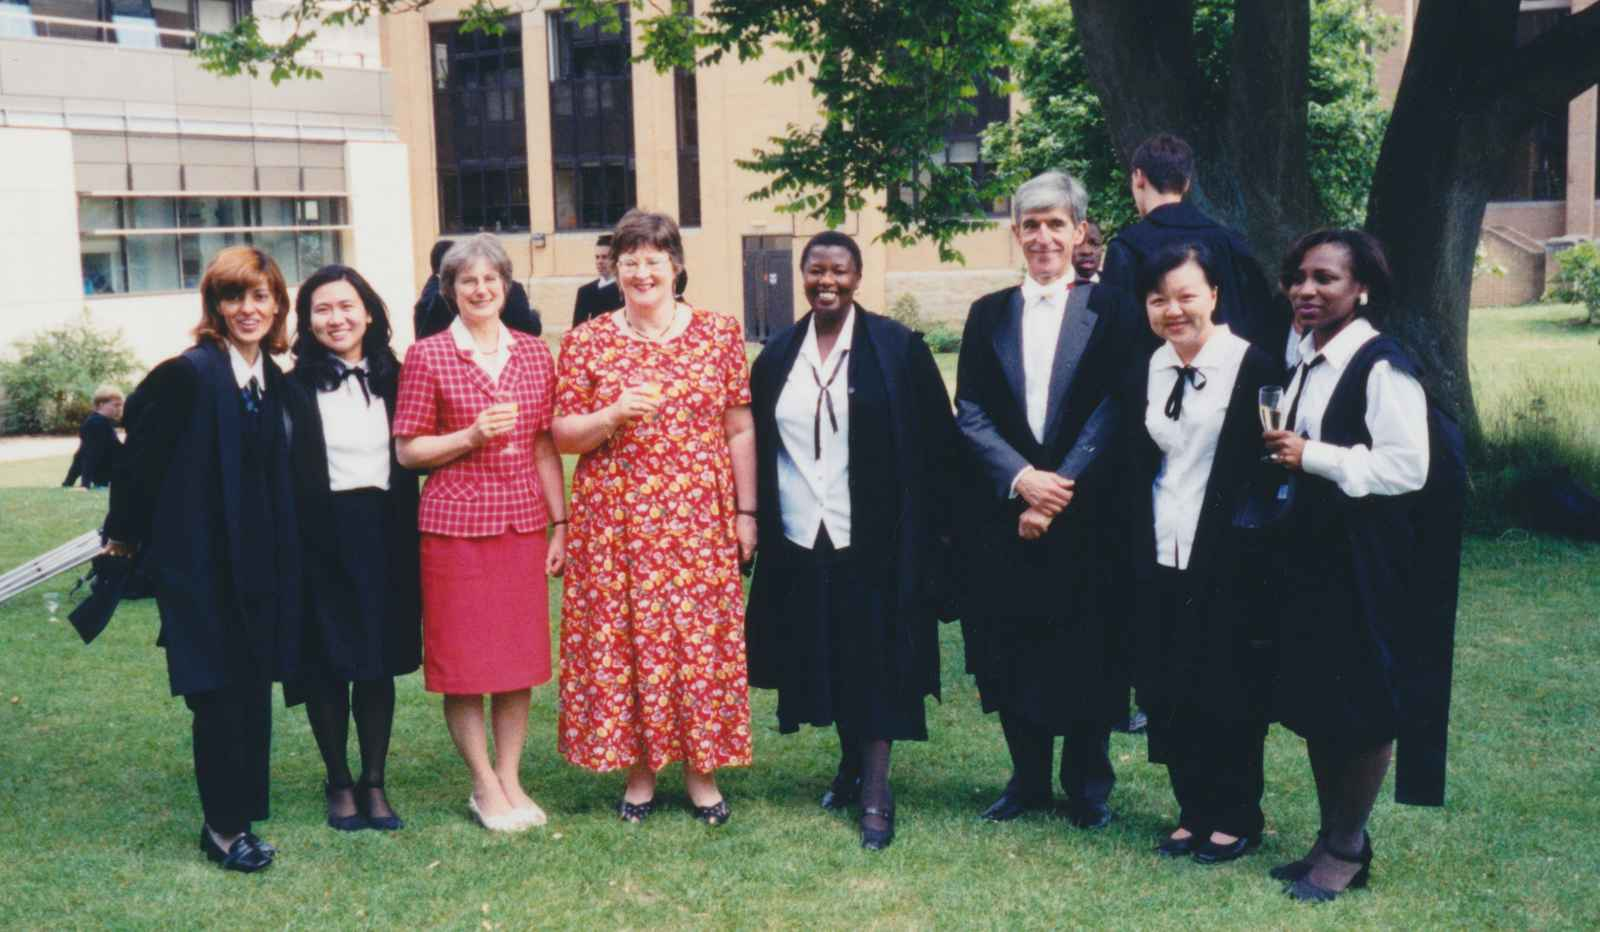 Ambassador Anna Aghadjanian (1st from left); Alison Nicol, former Administrator (3rd from left); Glenis Collins, former Secretary (4th from left); Ambassador Christopher Long, former Director of the Programme (3rd from right)